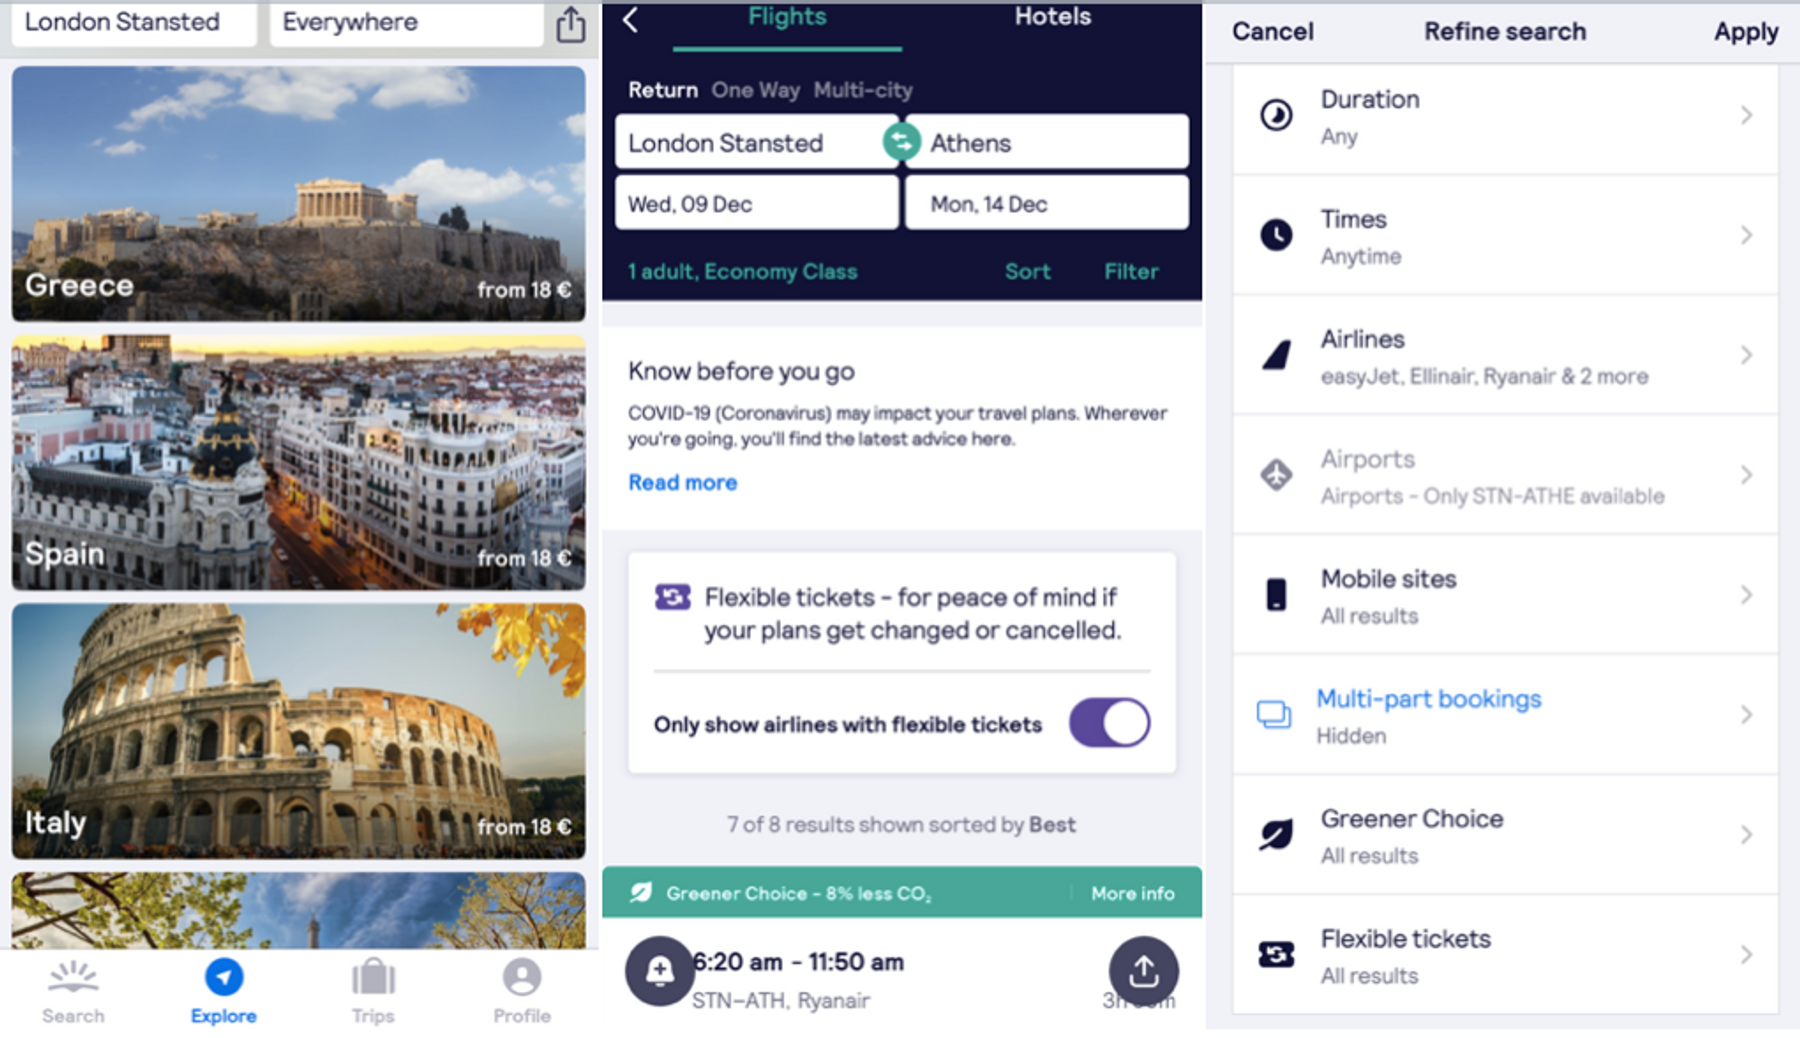 Filter flights for airline ratings while searching for Black Friday flight deals